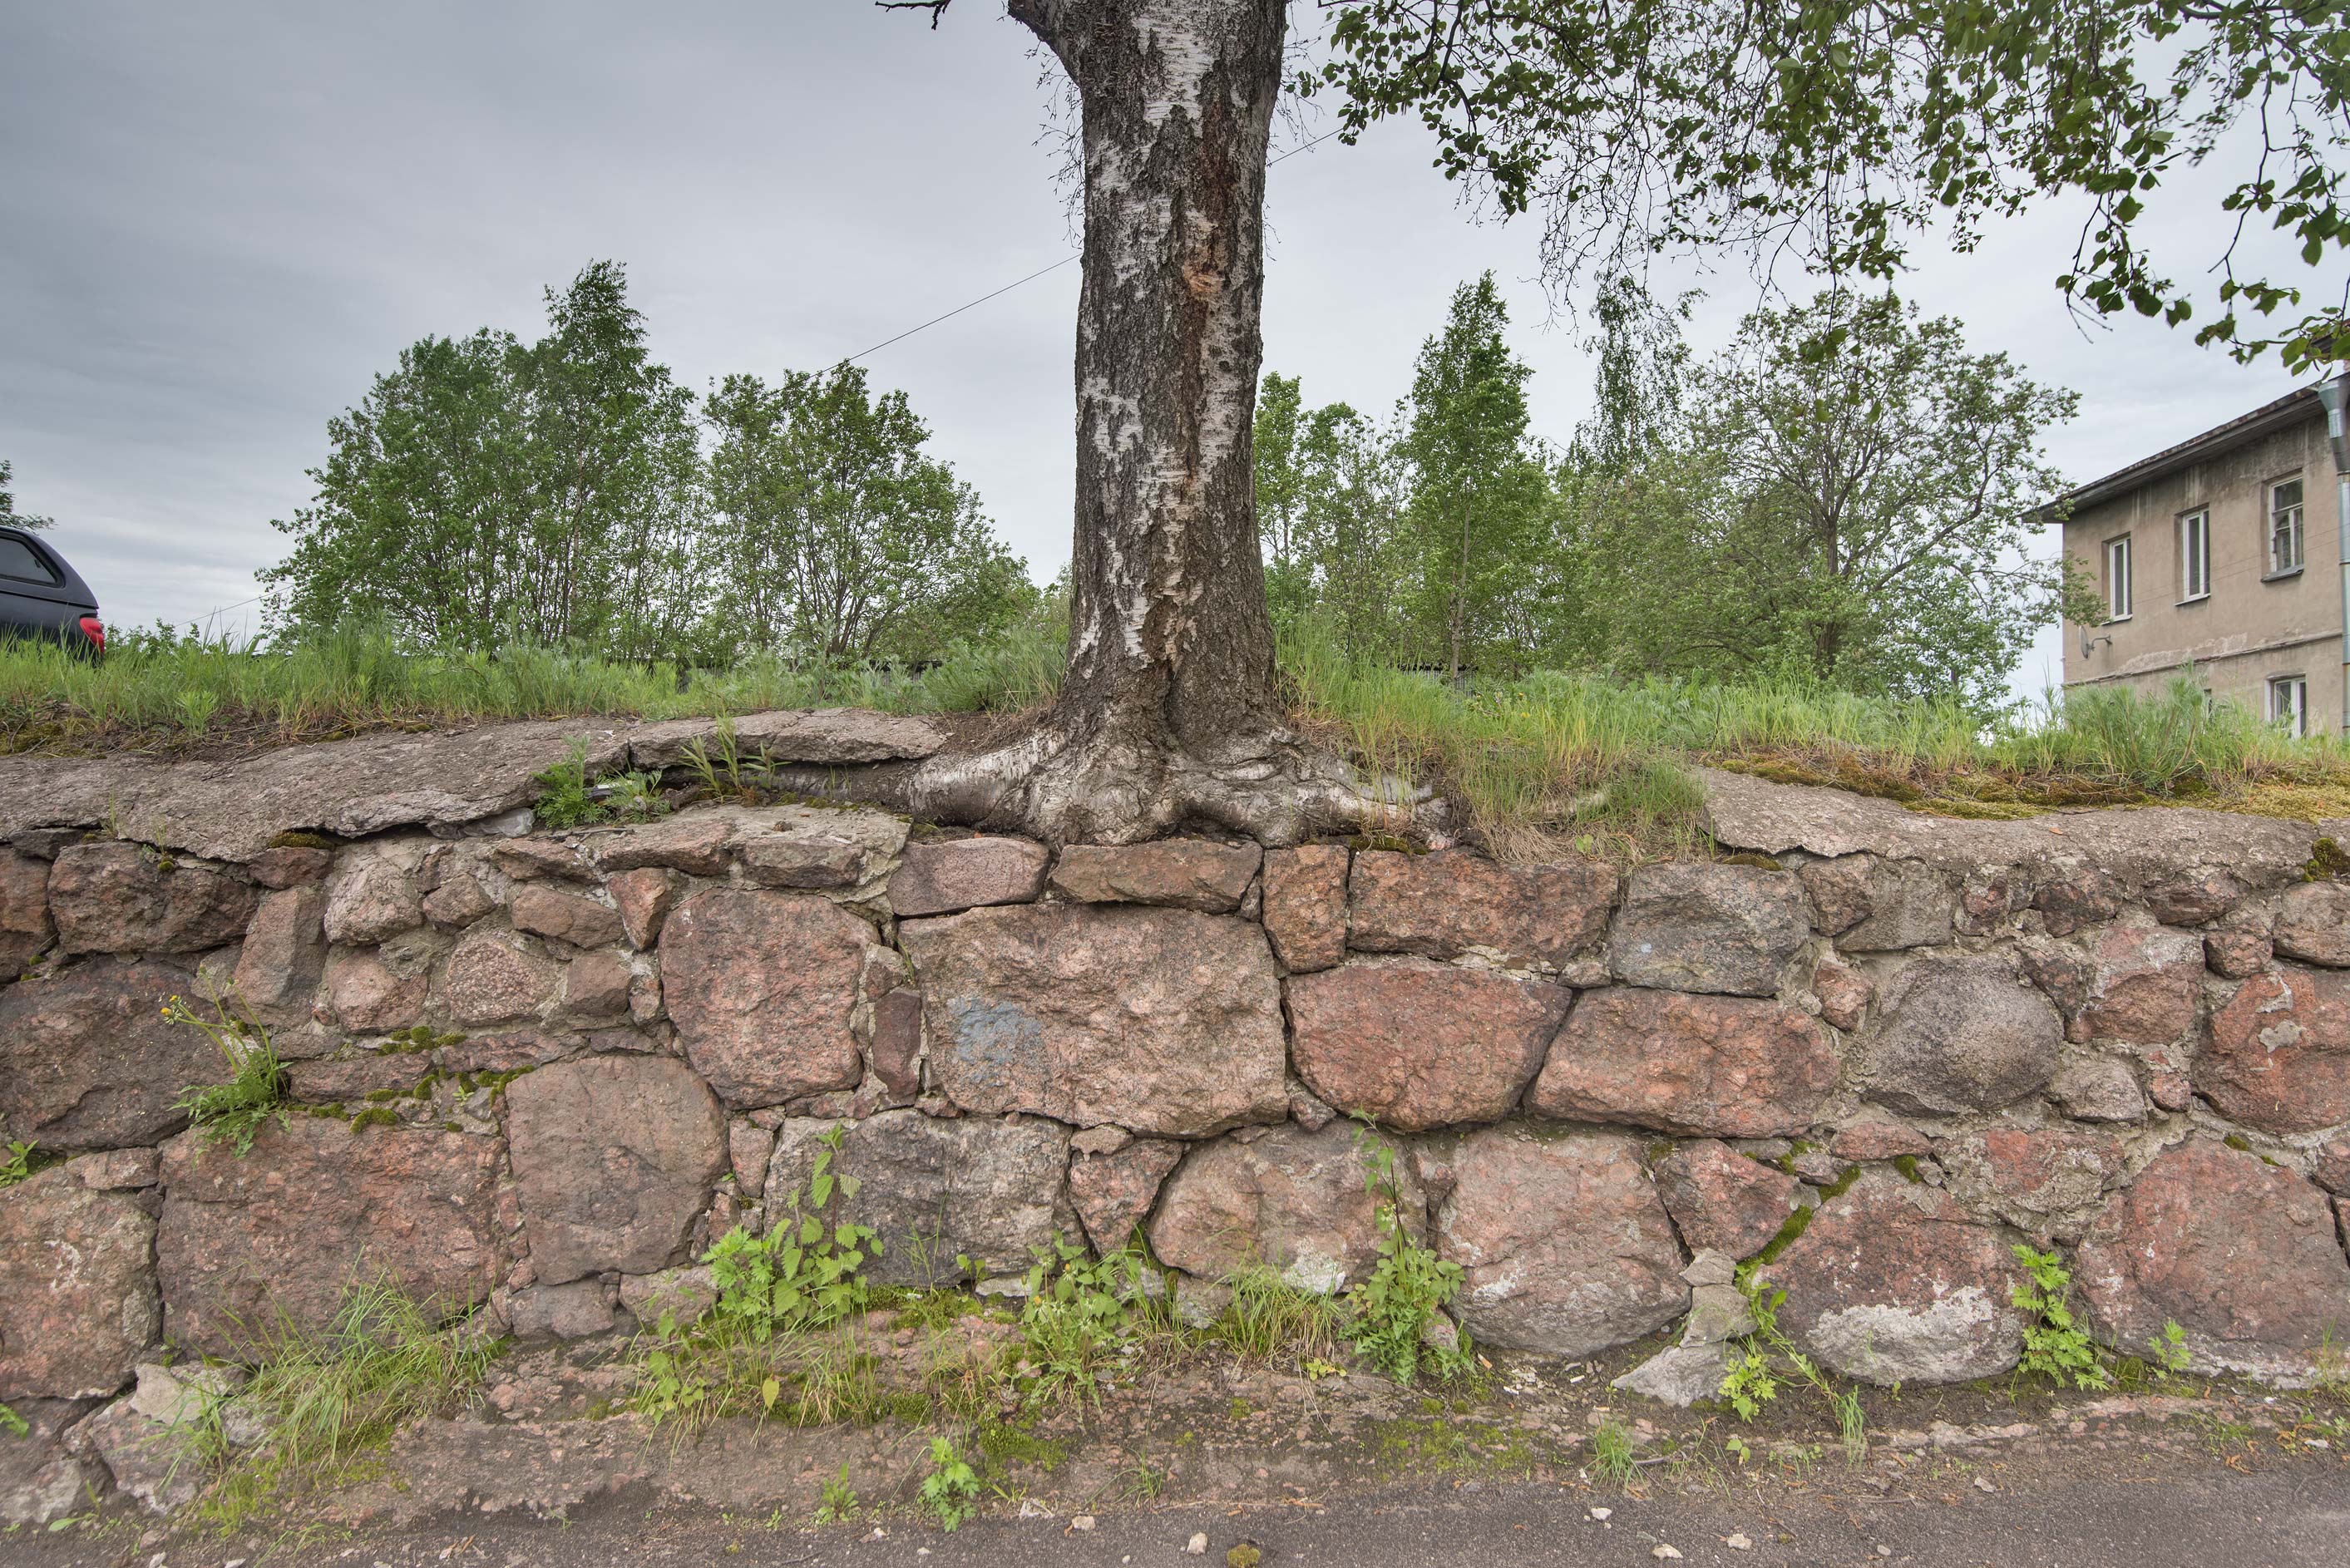 Birch growing on a stone fence at Storozhevoy Bashni St. in old city of Vyborg. Russia